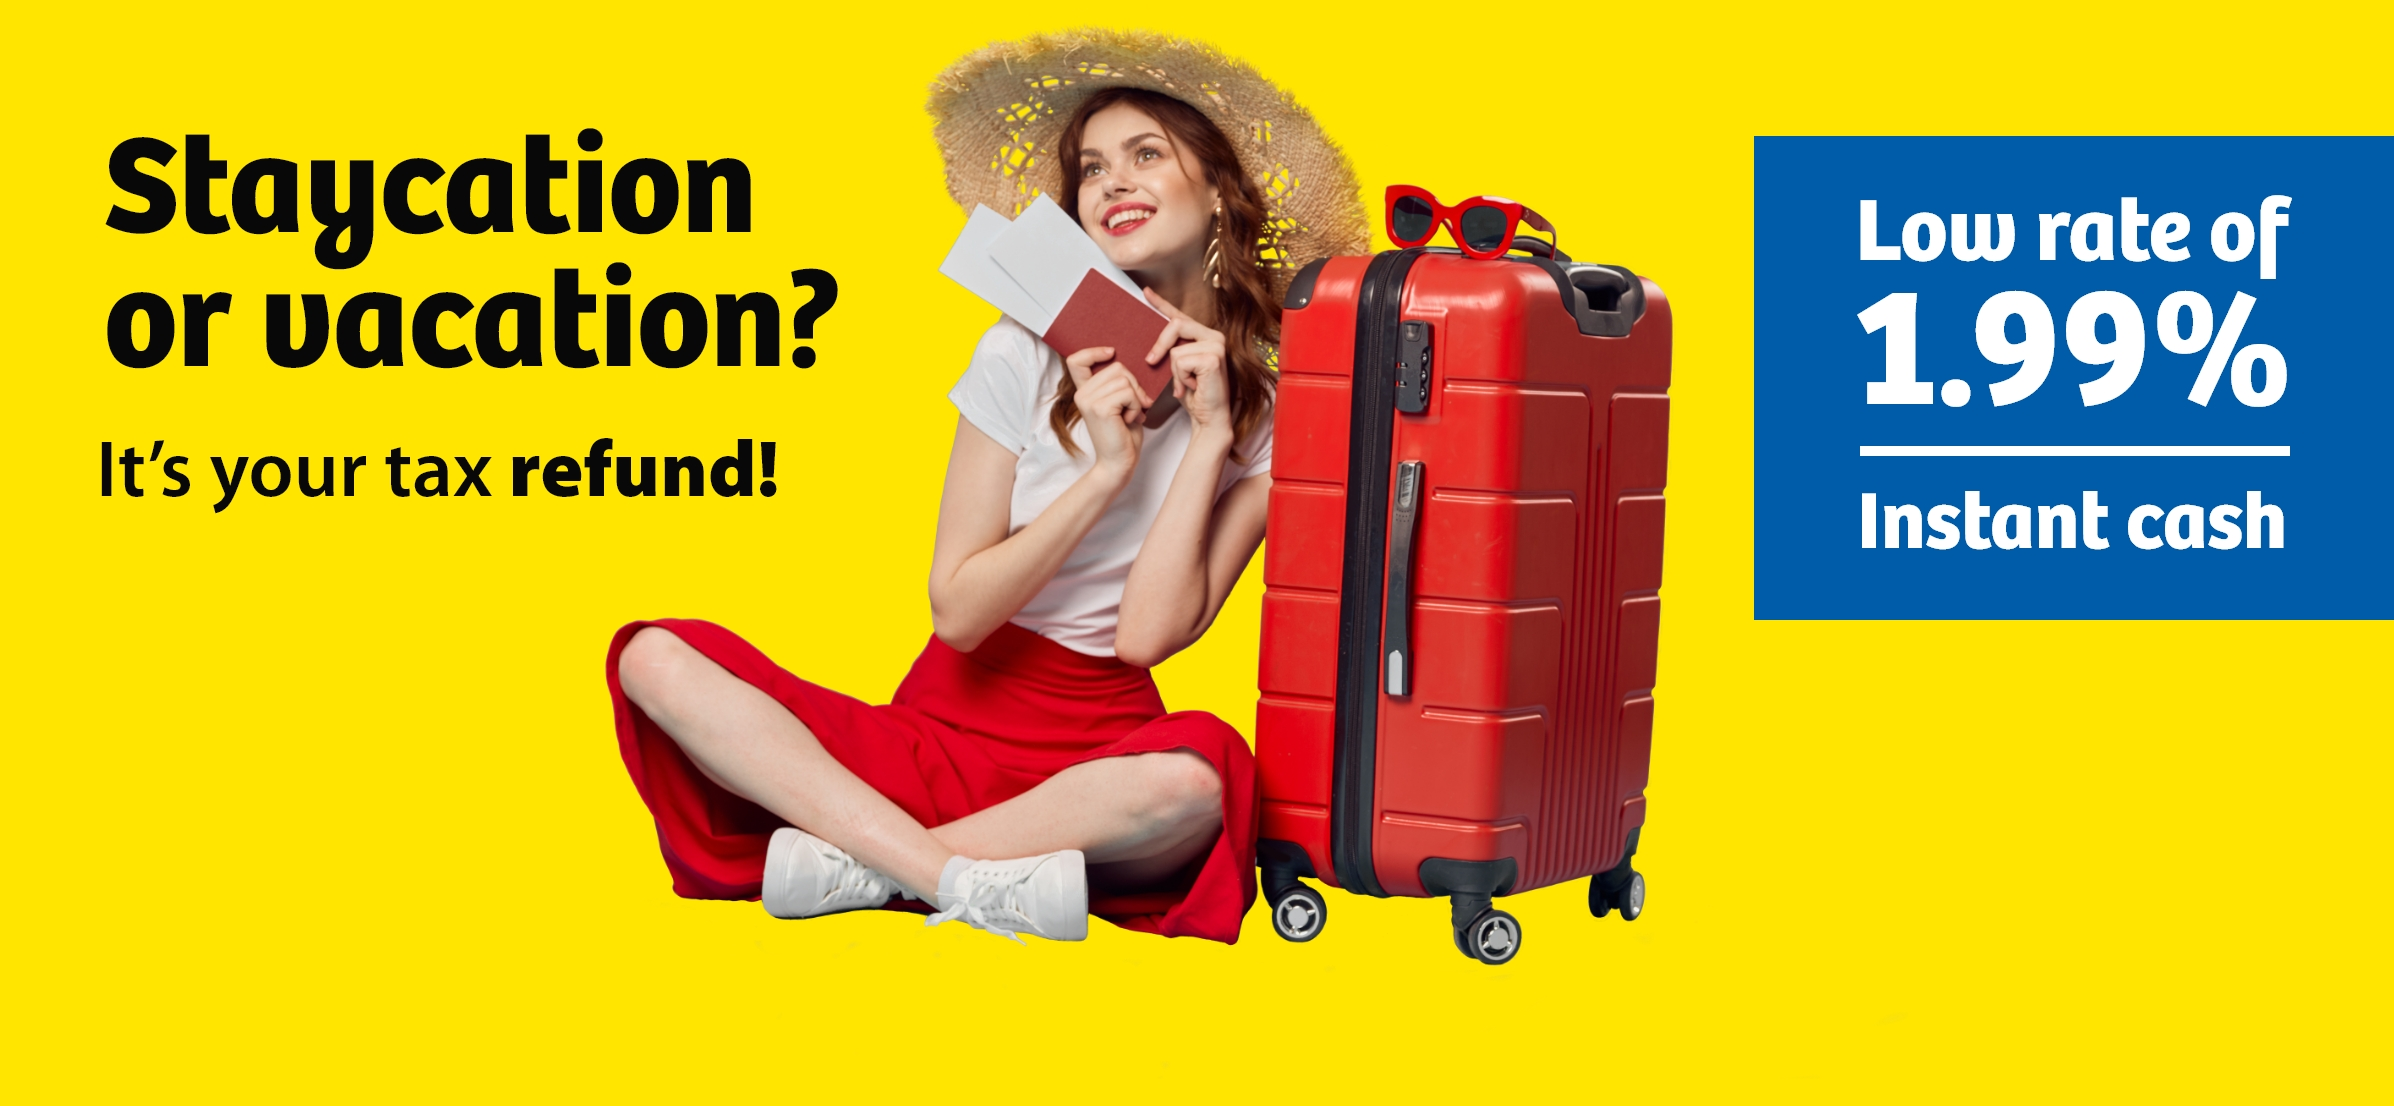 Staycation or vacation? It's your tax refund! Low rate of 1.99% Instant cash.